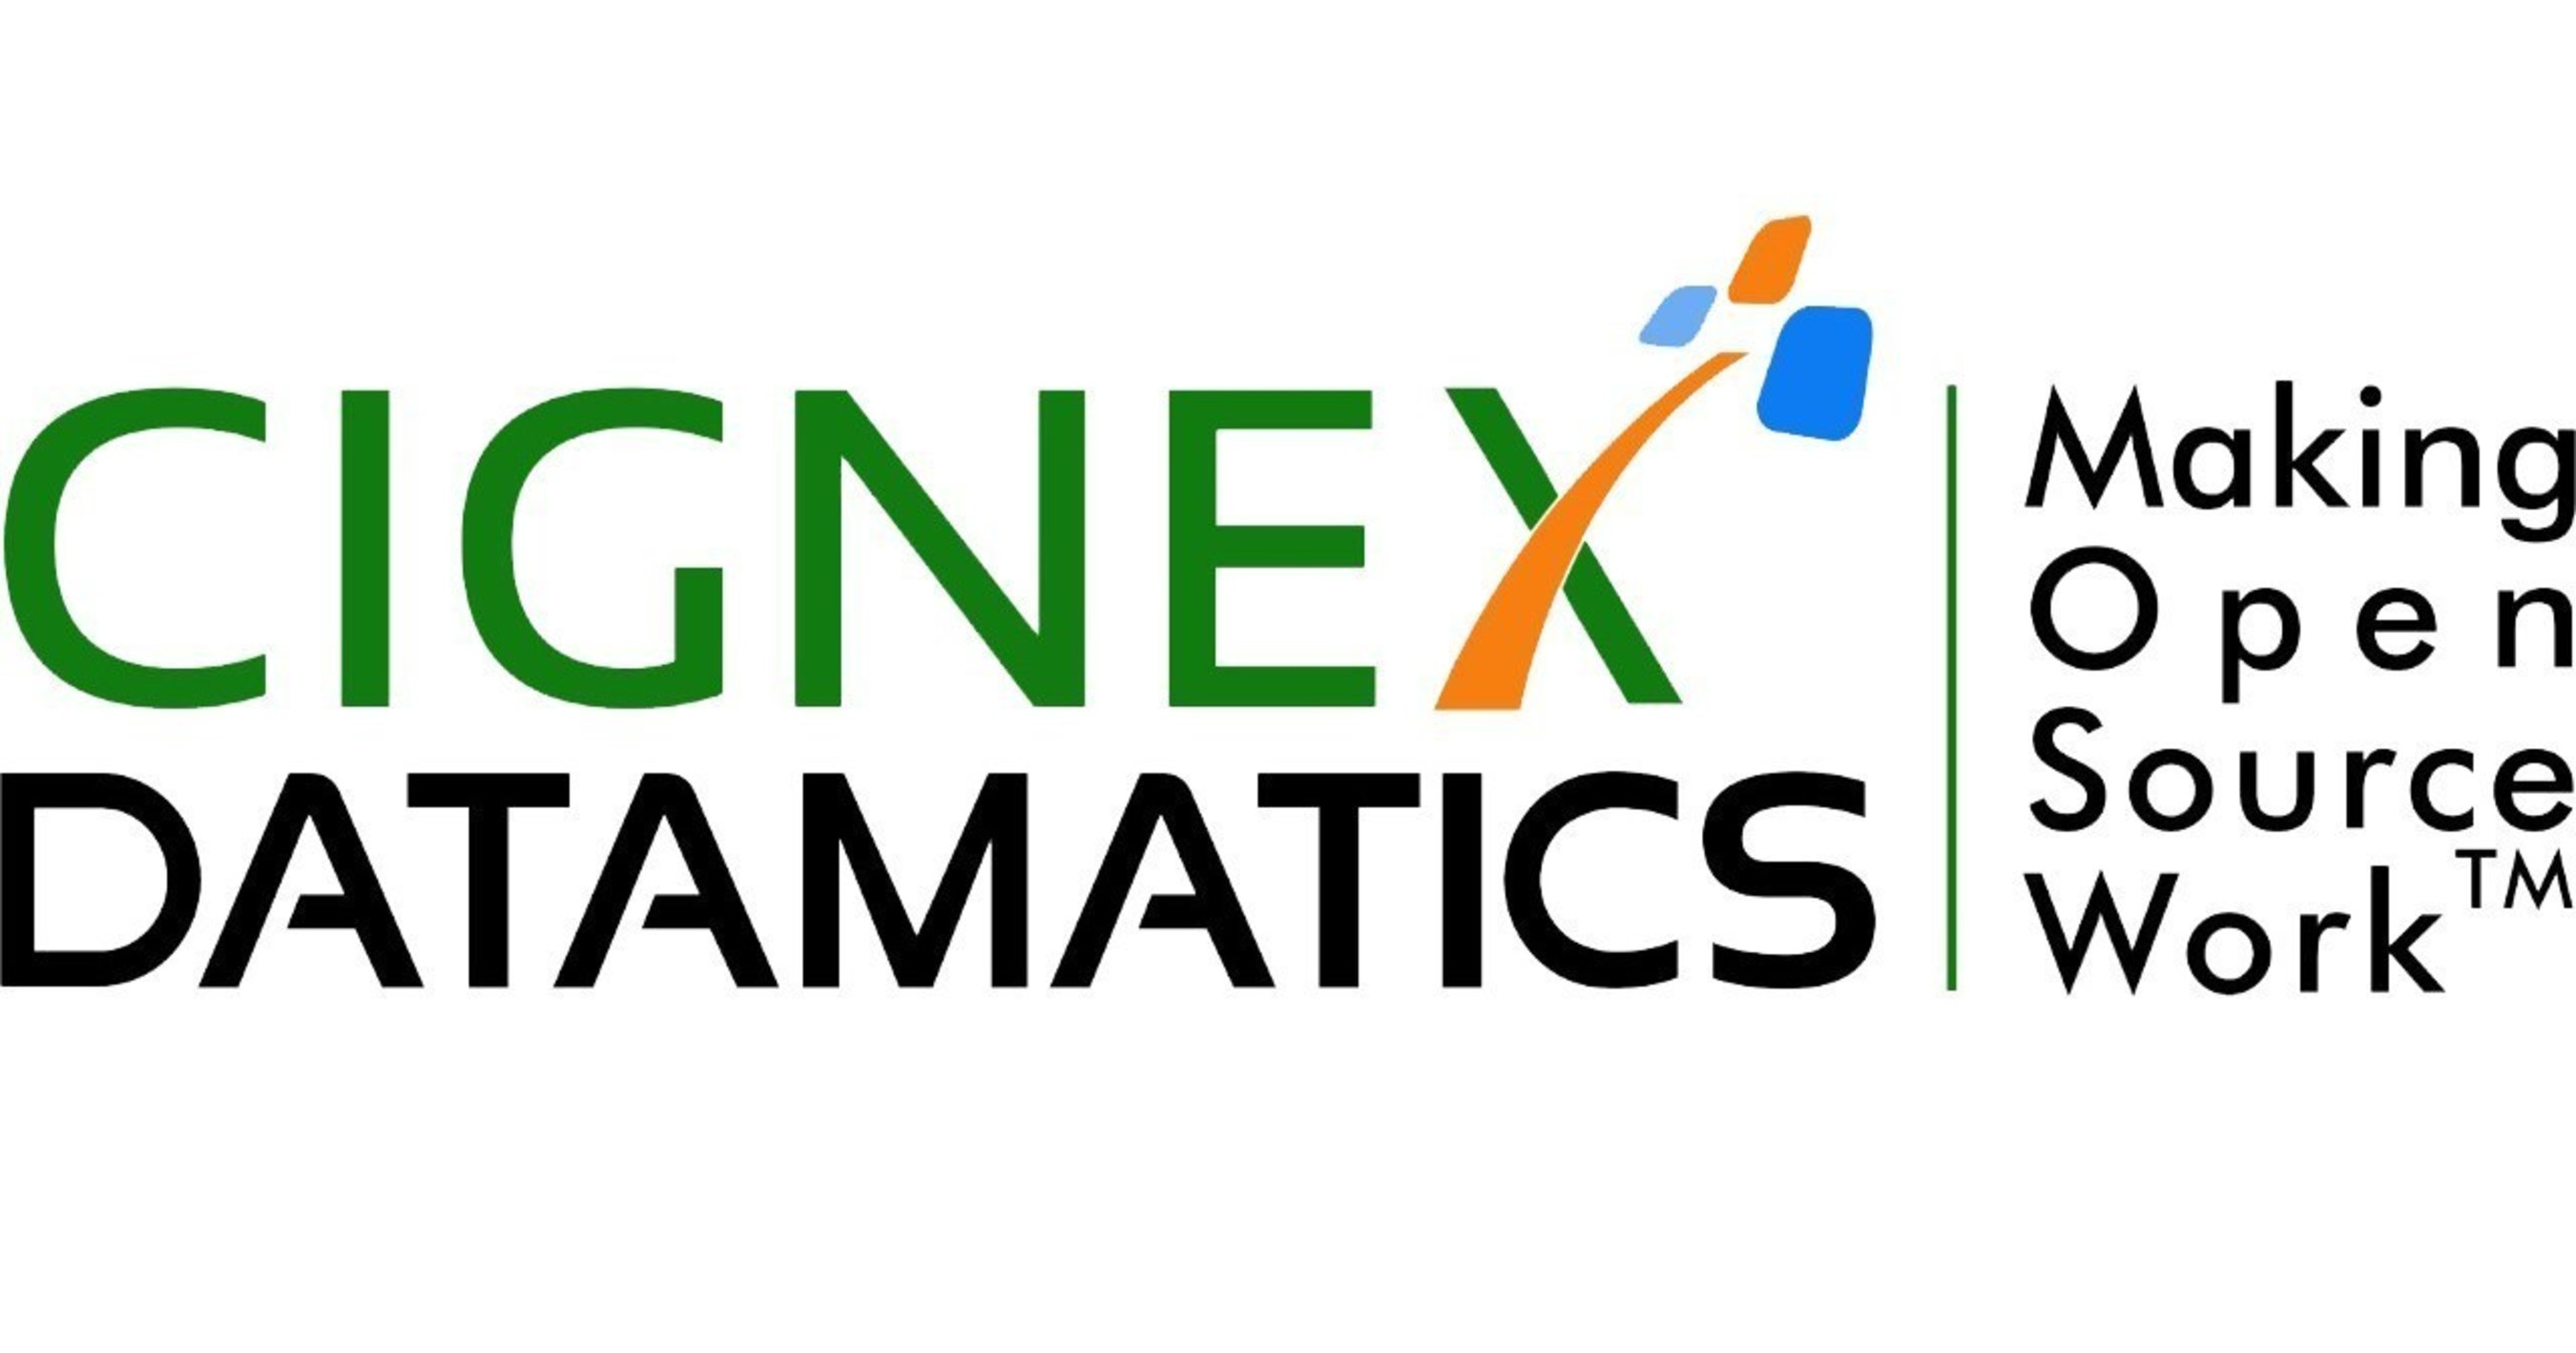 CIGNEX Datamatics Recognized as an OpenCompany on Glassdoor